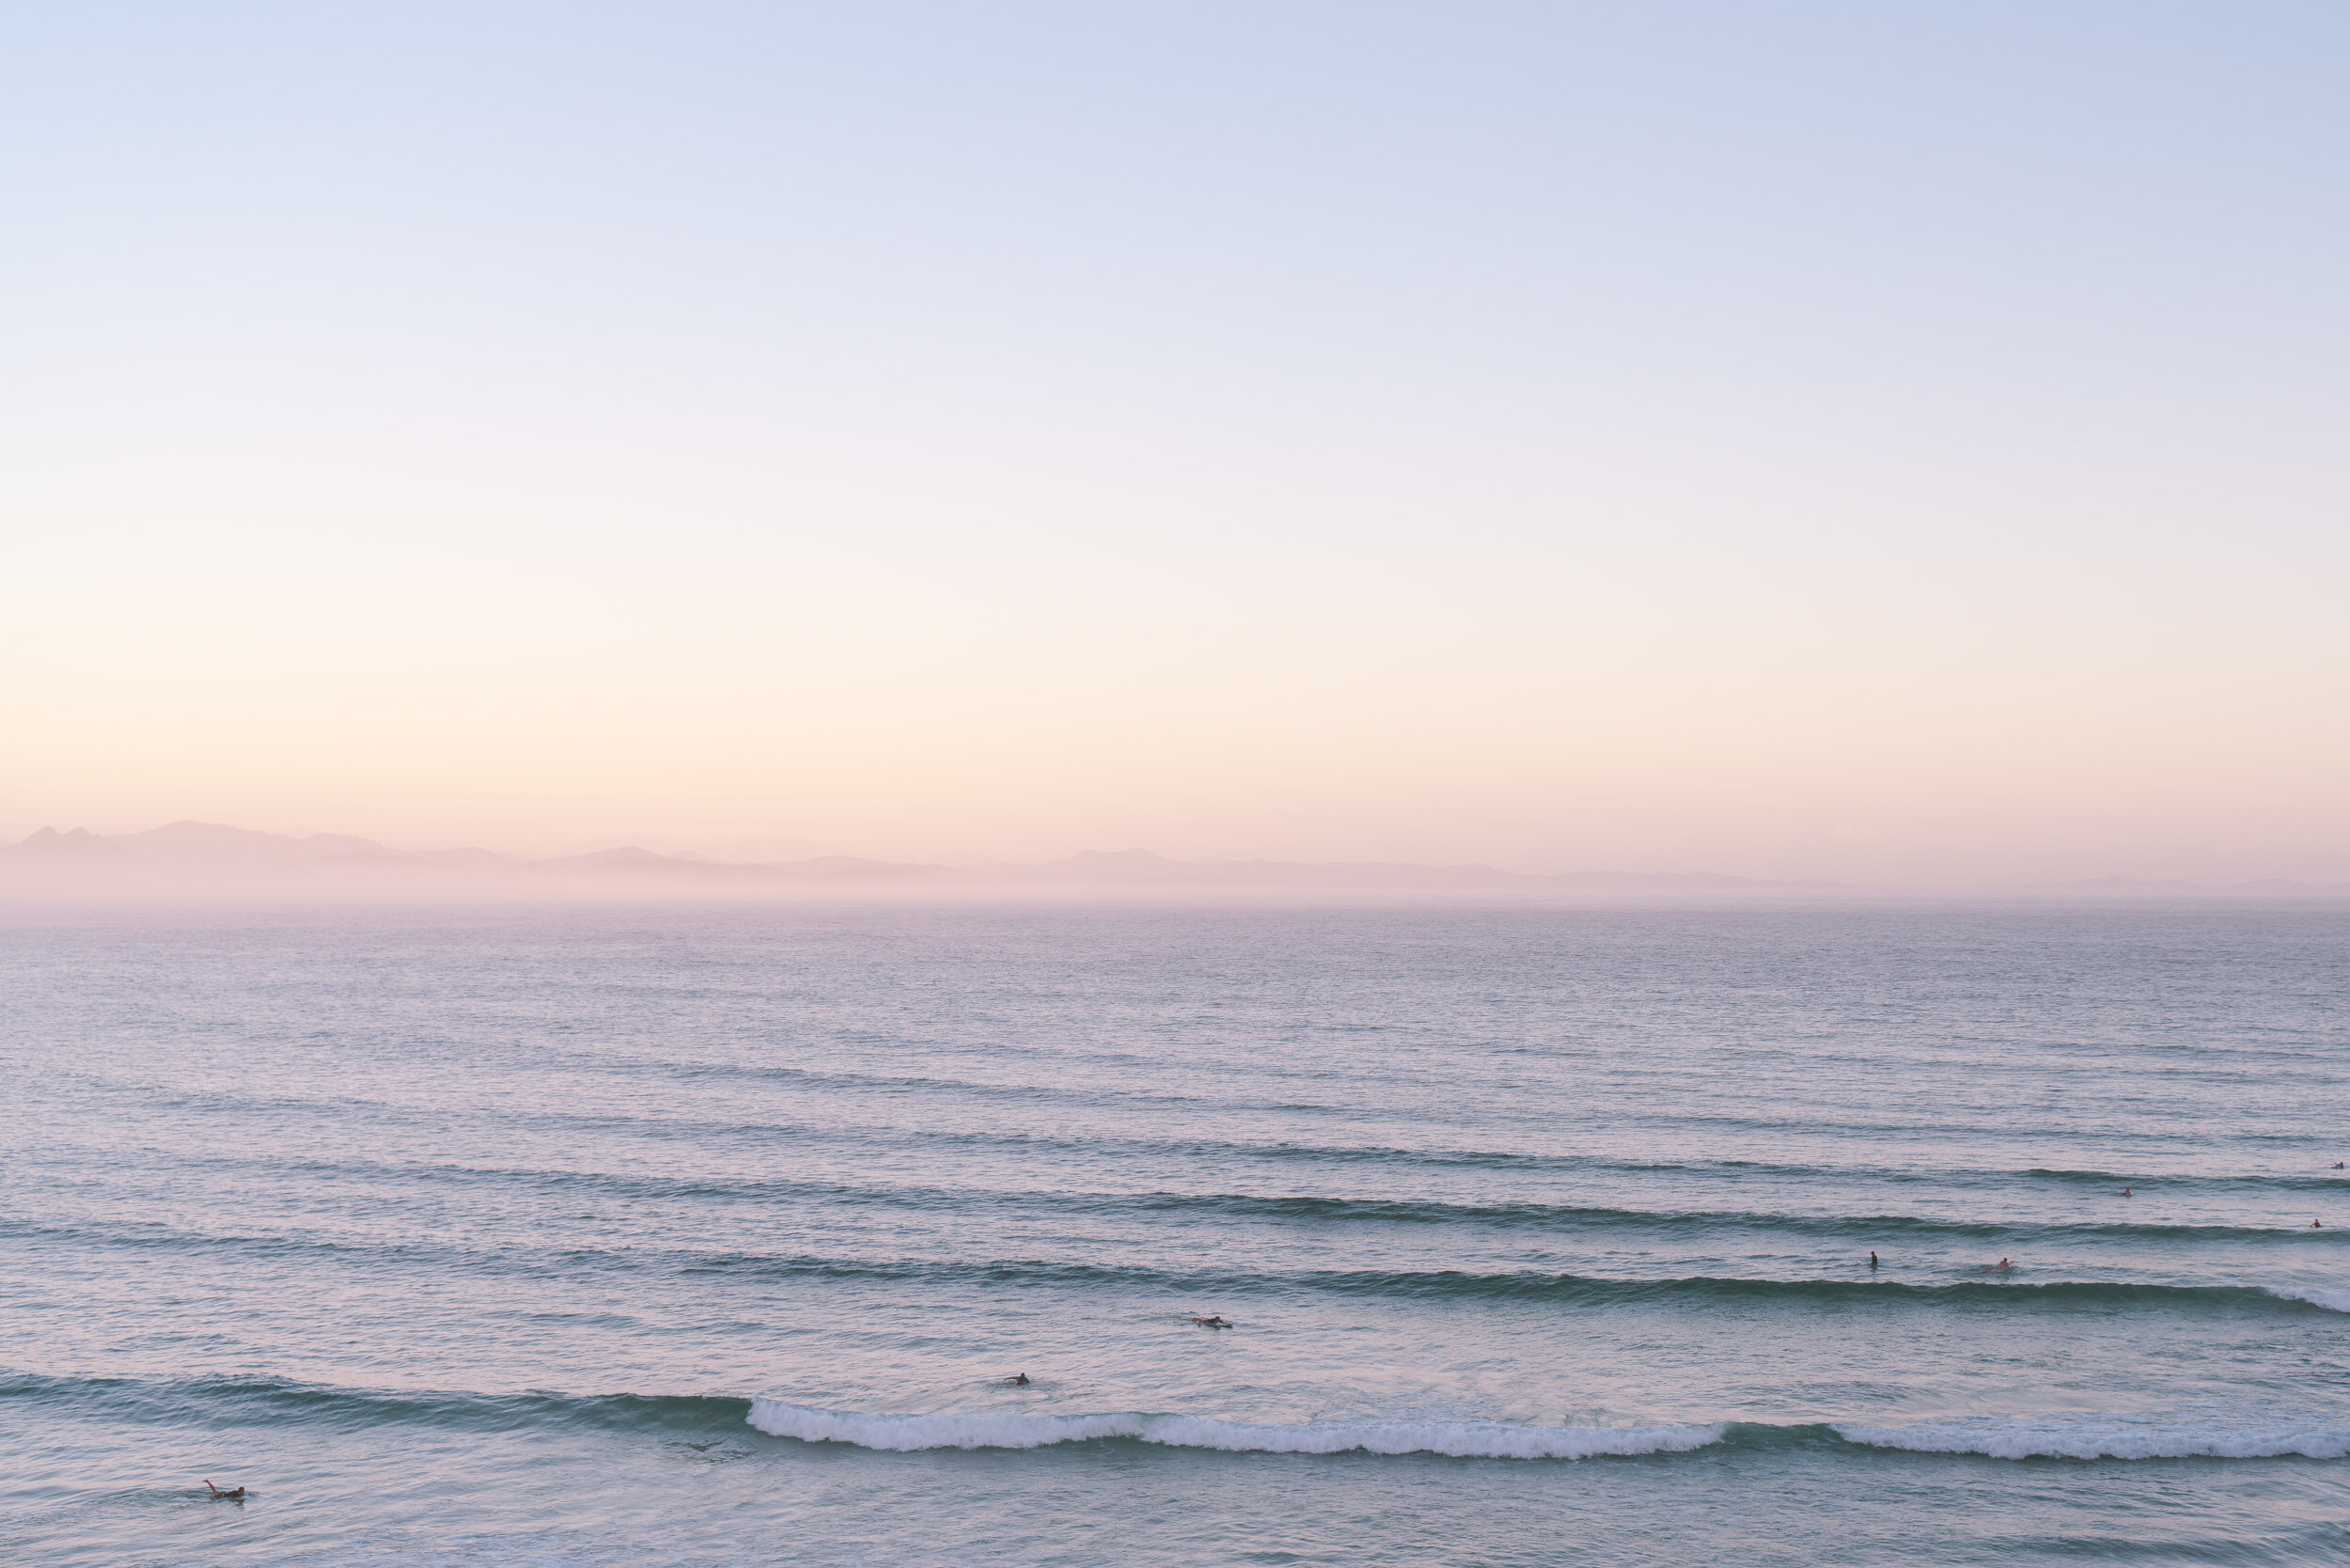 Sunrise surfers heading out, The Pass, Byron Bay